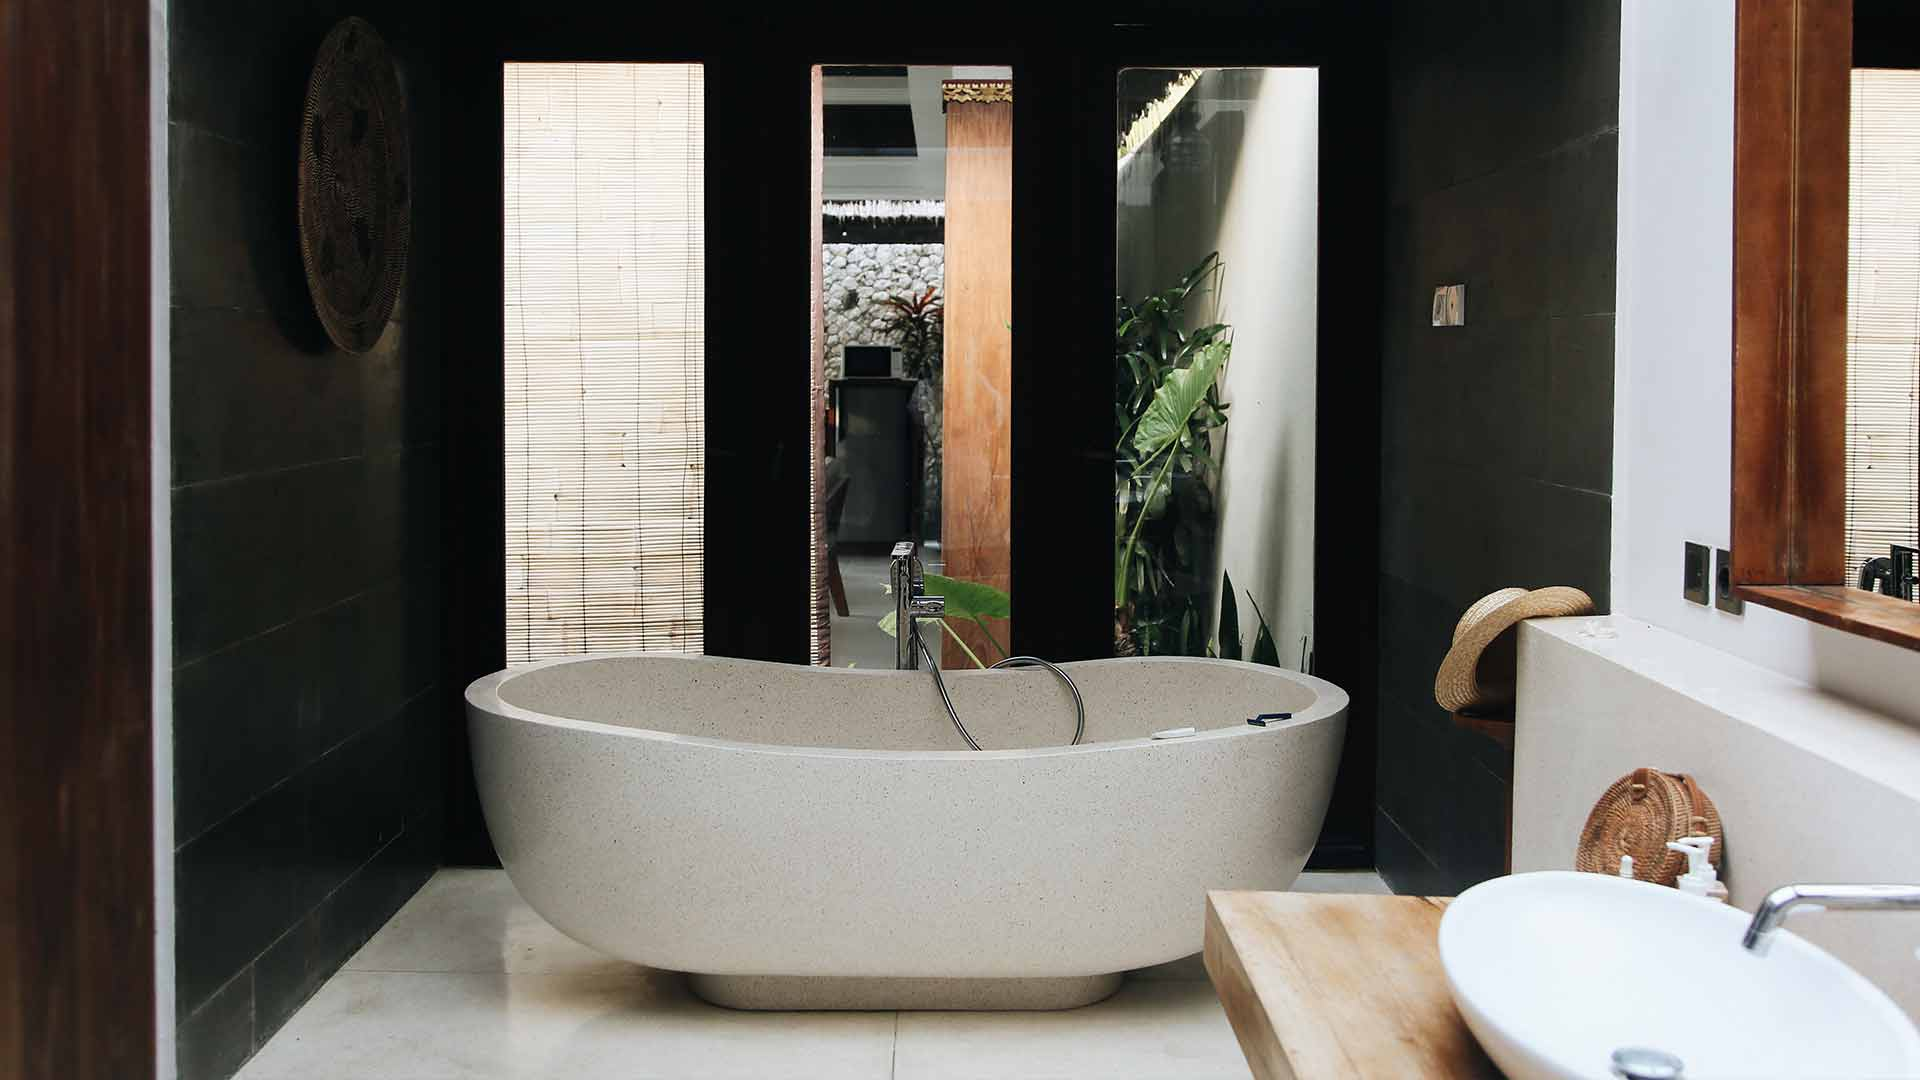 3 Reasons Why You Should Always Work with an Experienced Bathroom Renovator